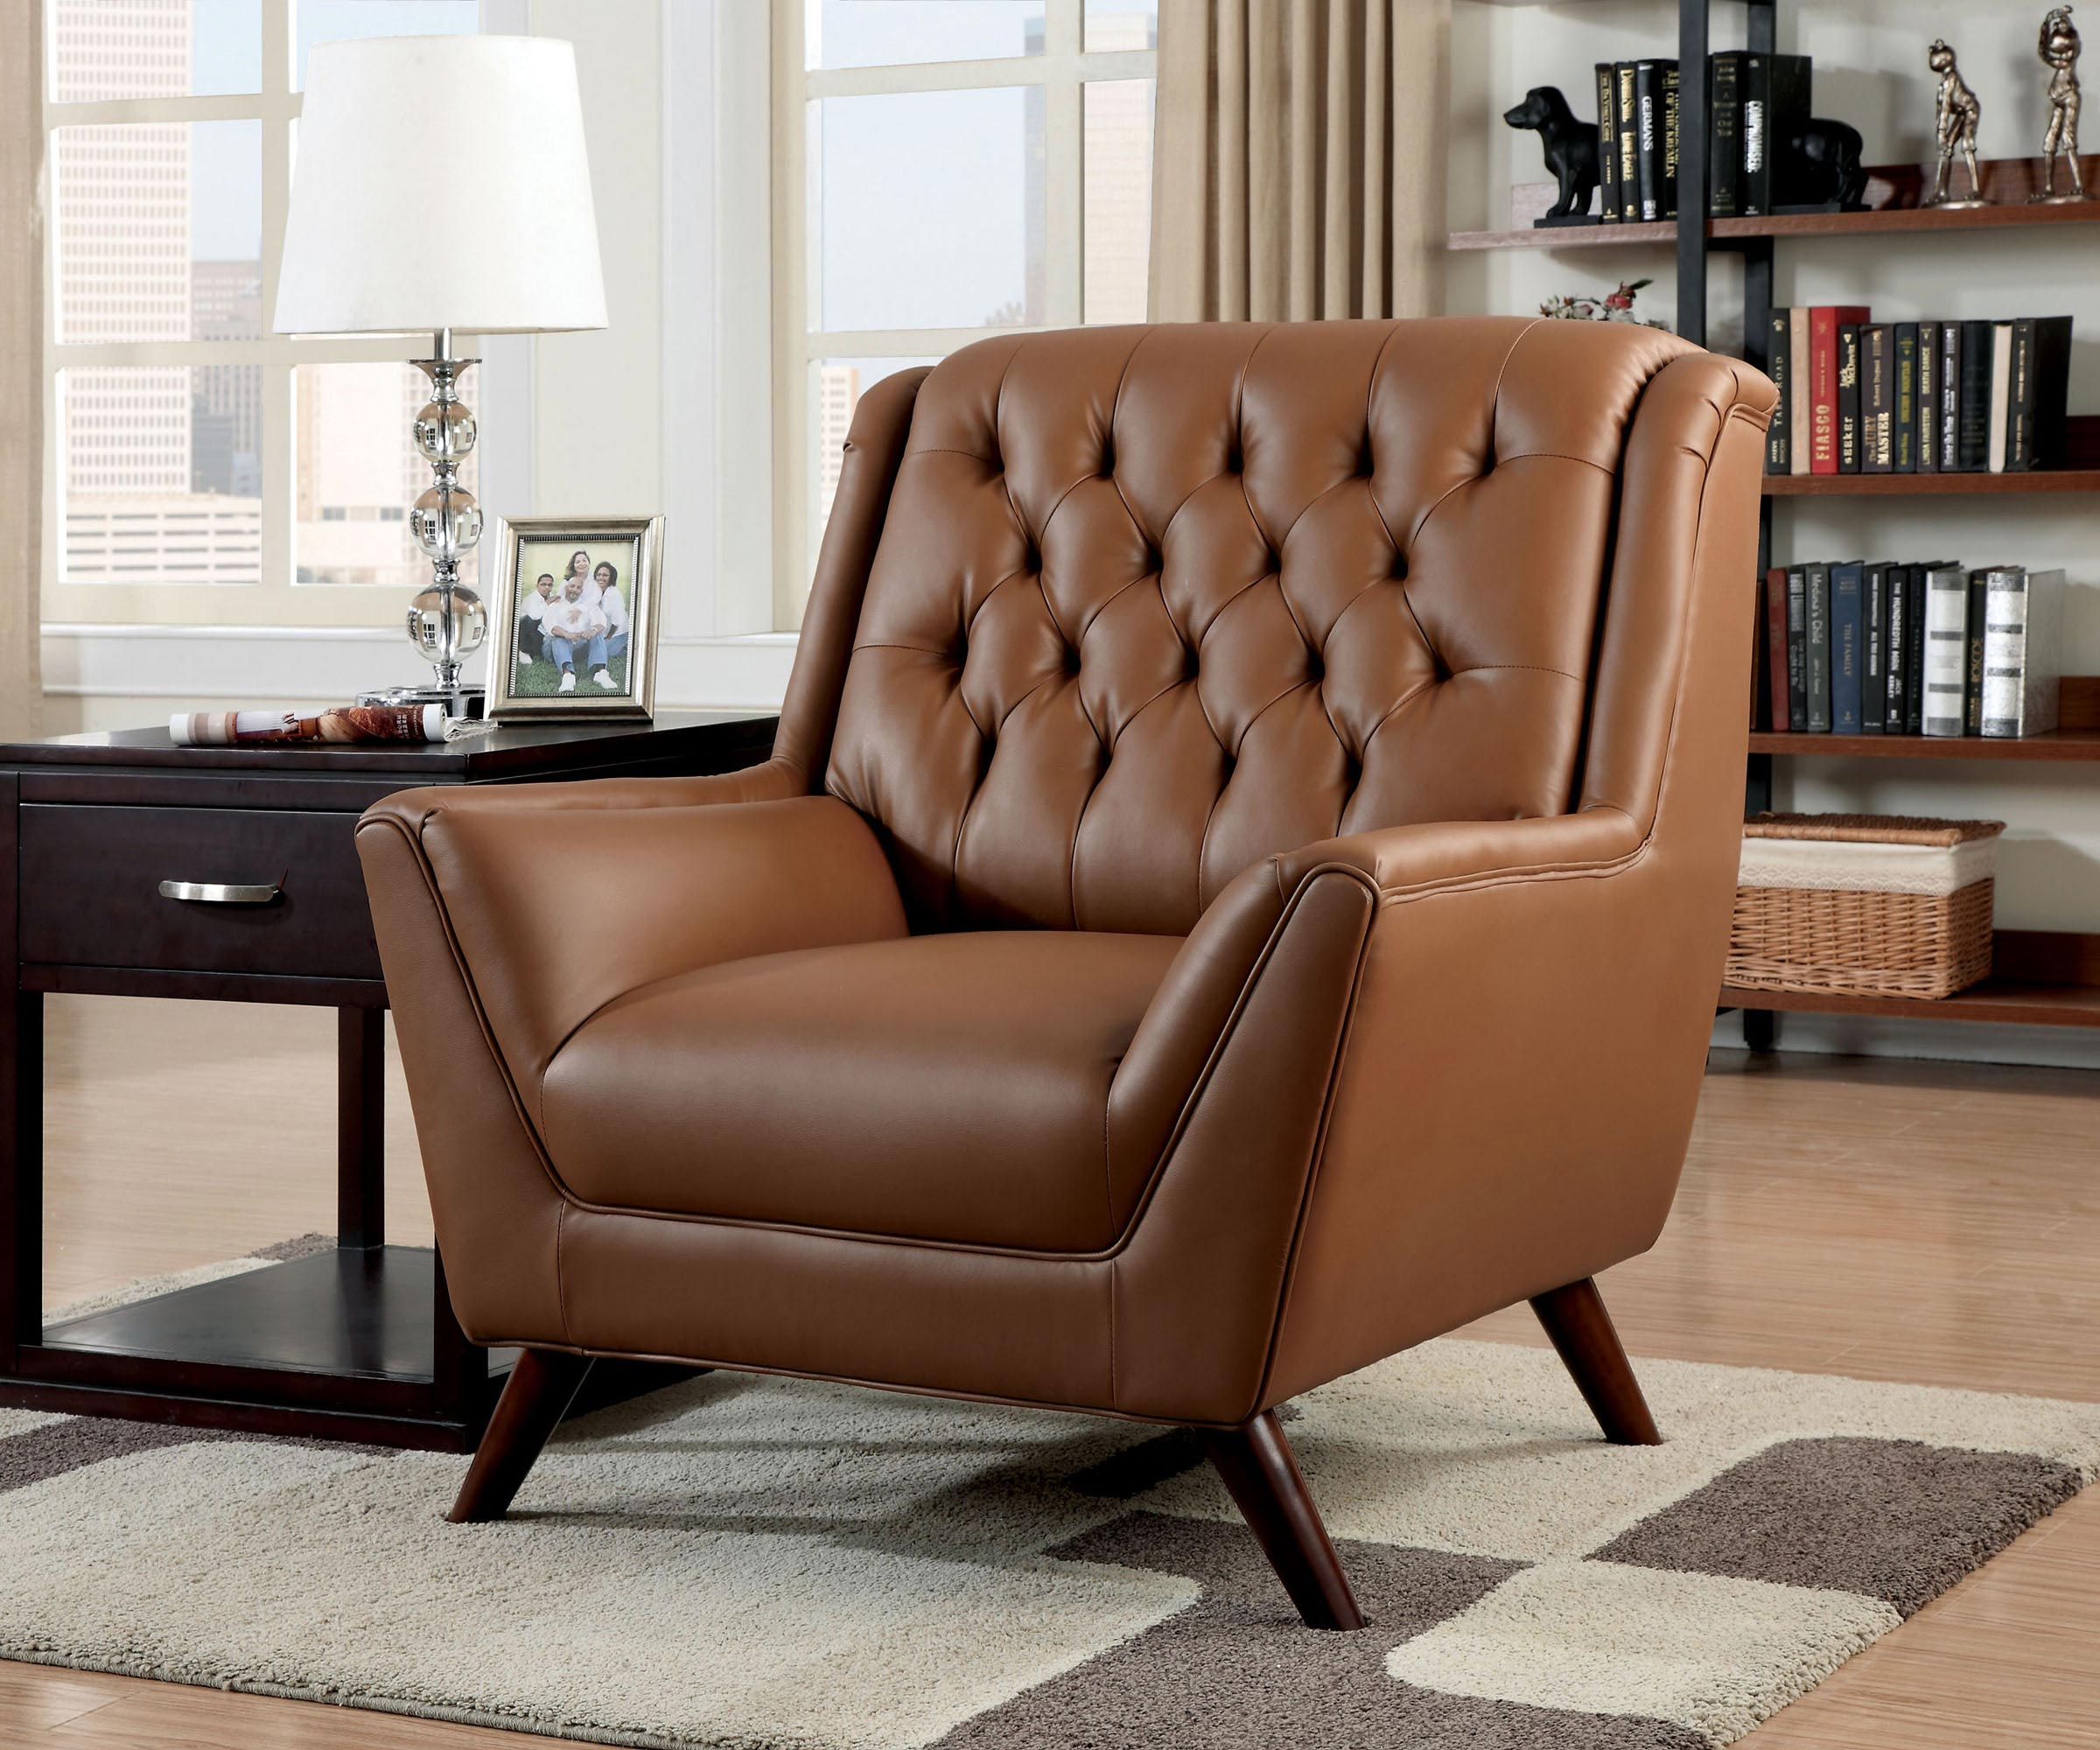 reading high room cheap for wing accent a living full livings wingback printed set amazing chair of armless chairs half tufted spectacular size back and